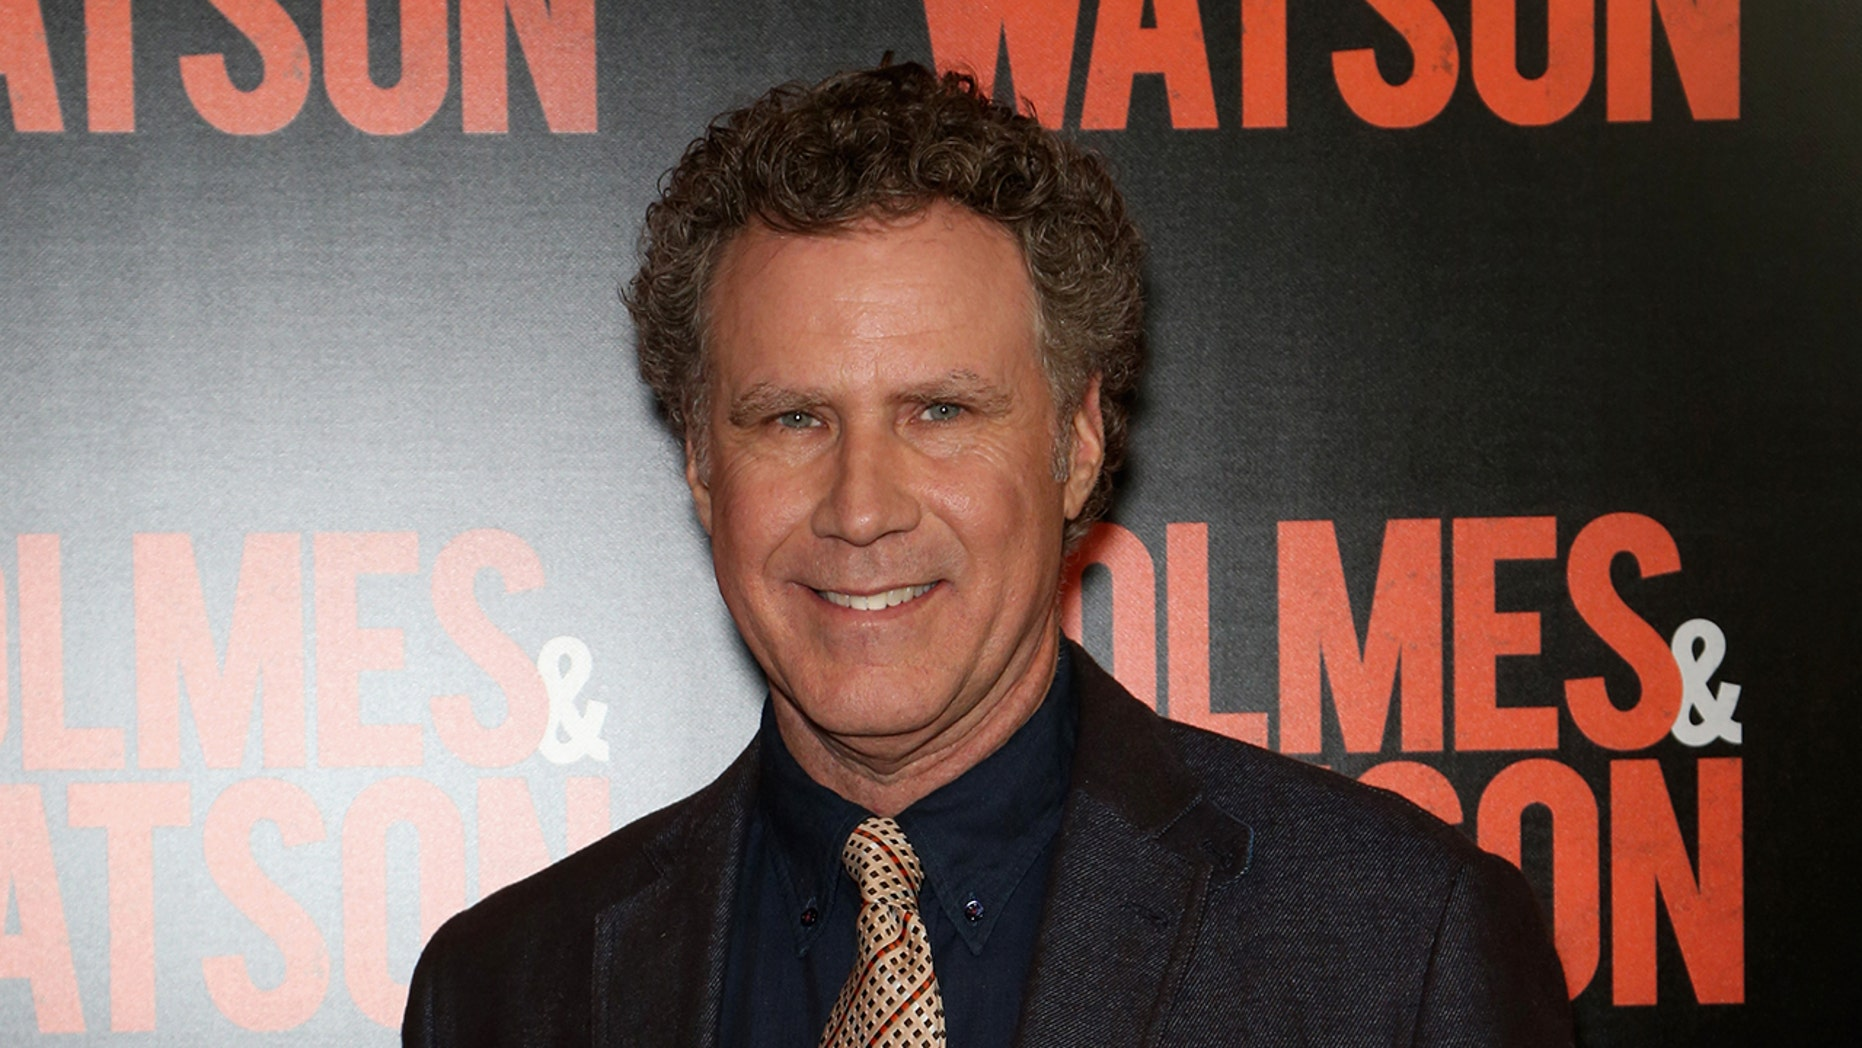 Will Ferrell urged people to vote when he appeared in a video with Sen. Doug Jones, D-Ala.